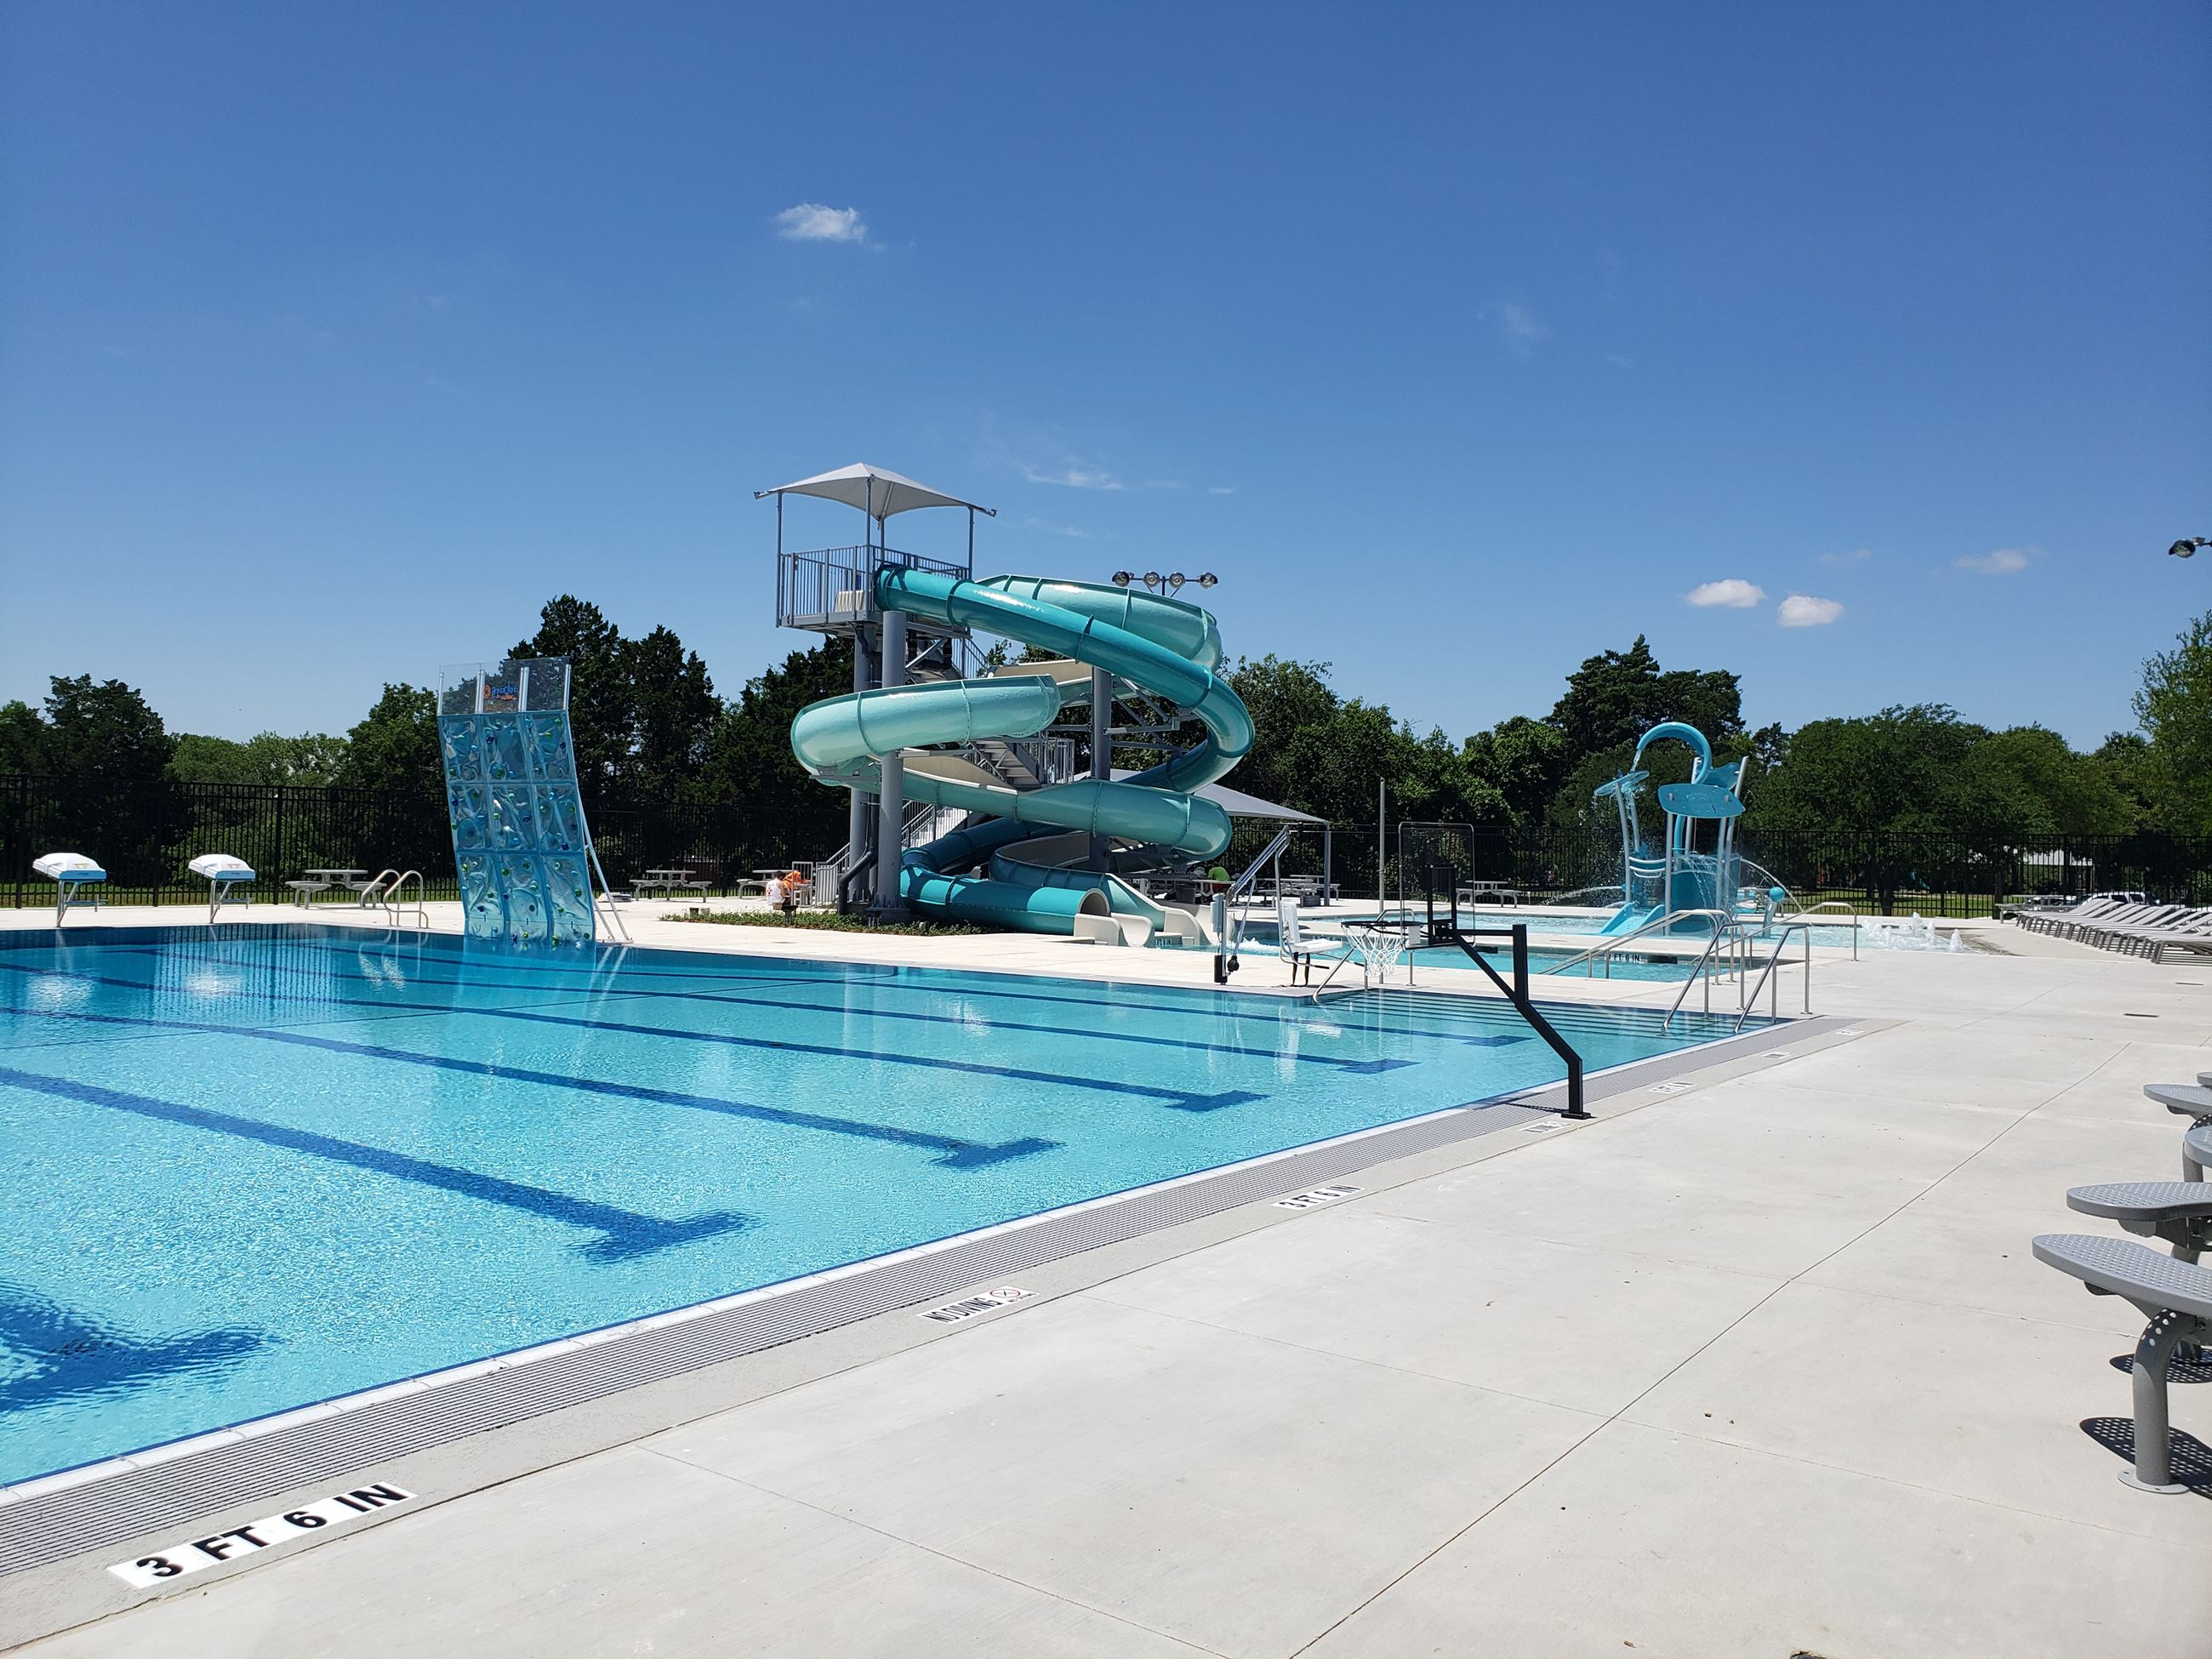 Lake Highlands aquatic center